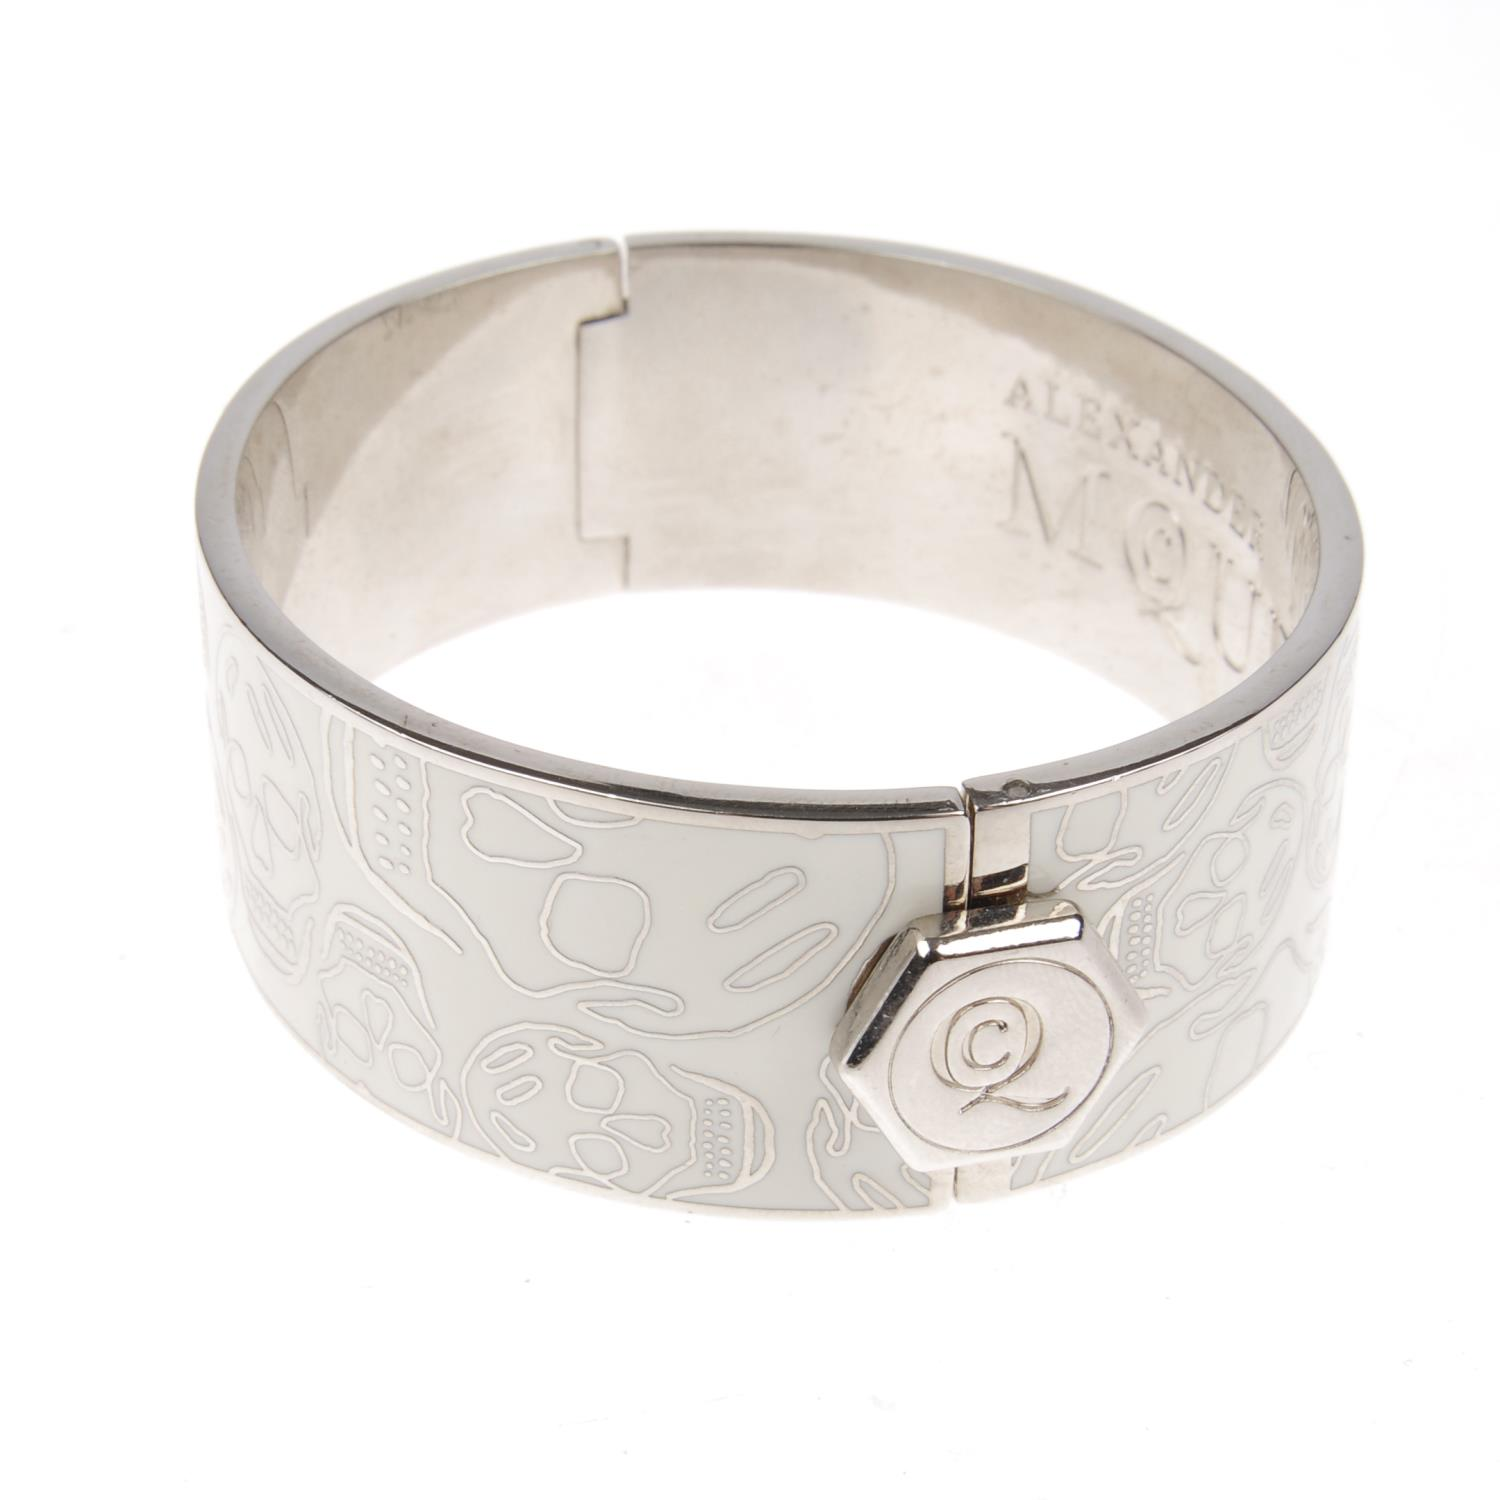 Lot 2 - ALEXANDER MCQUEEN - a skull enamel bangle.